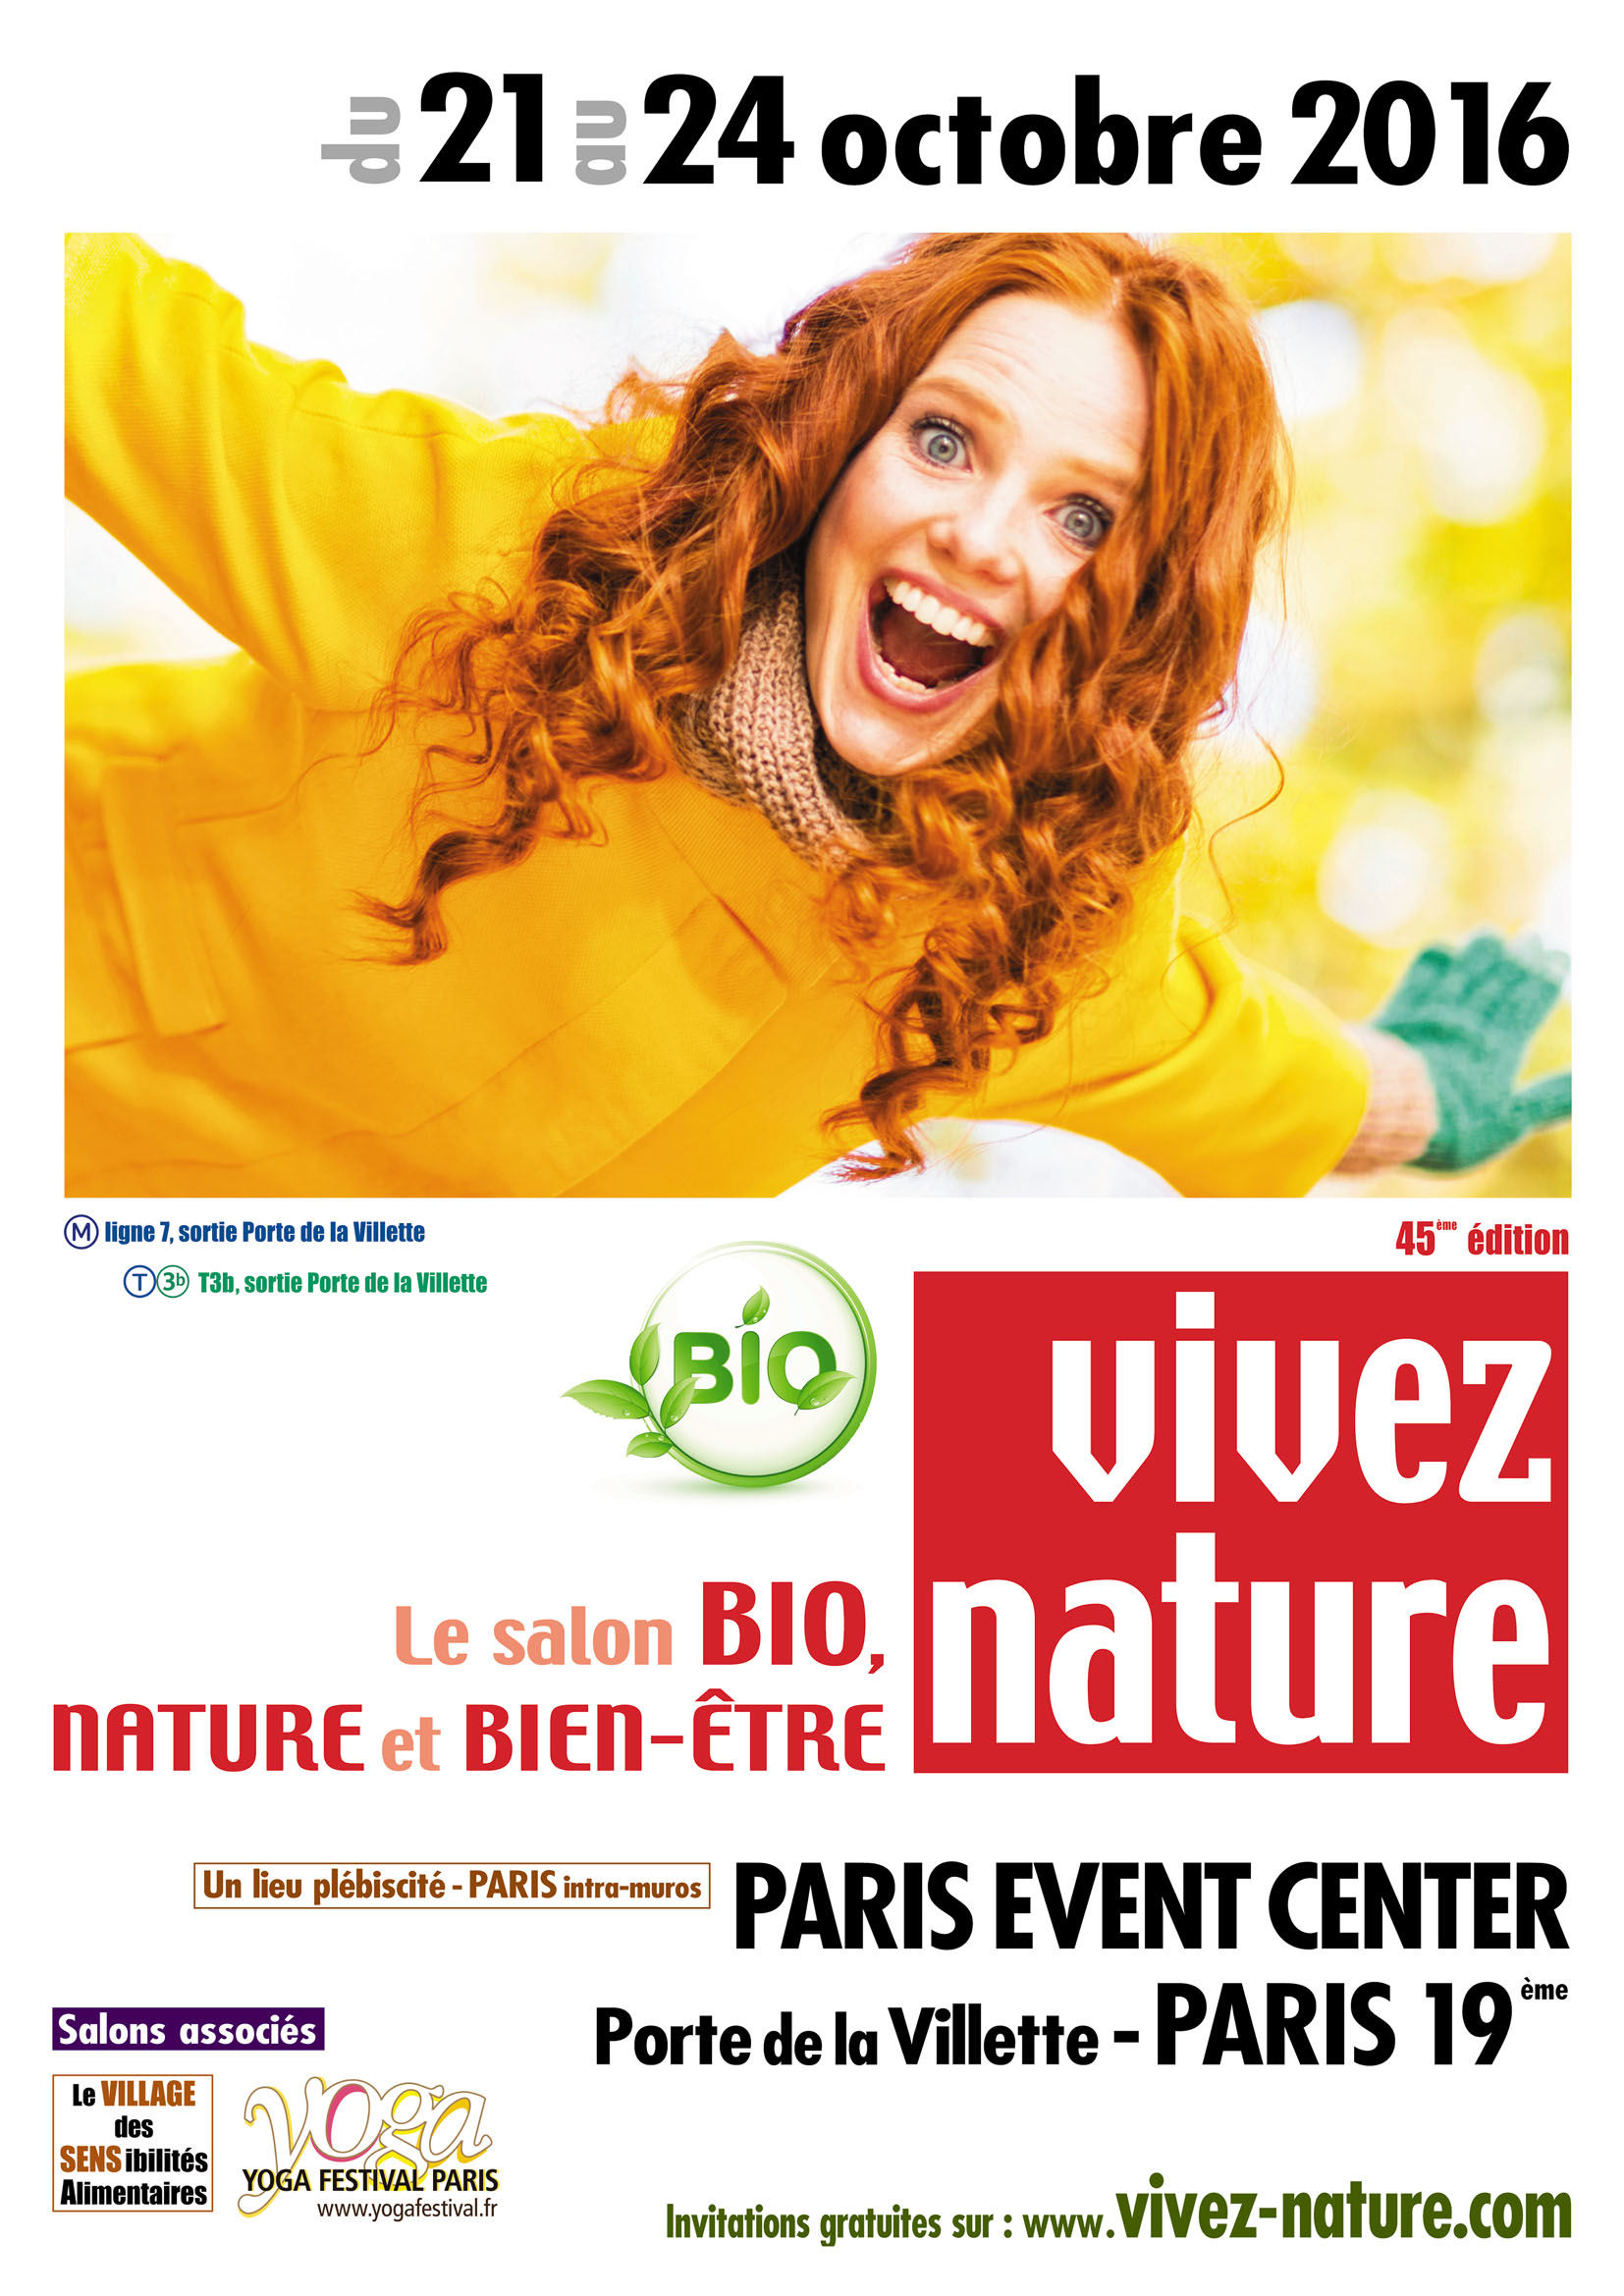 Vivez nature le salon bio et bien tre ce week end paris for Salon bio paris 2016